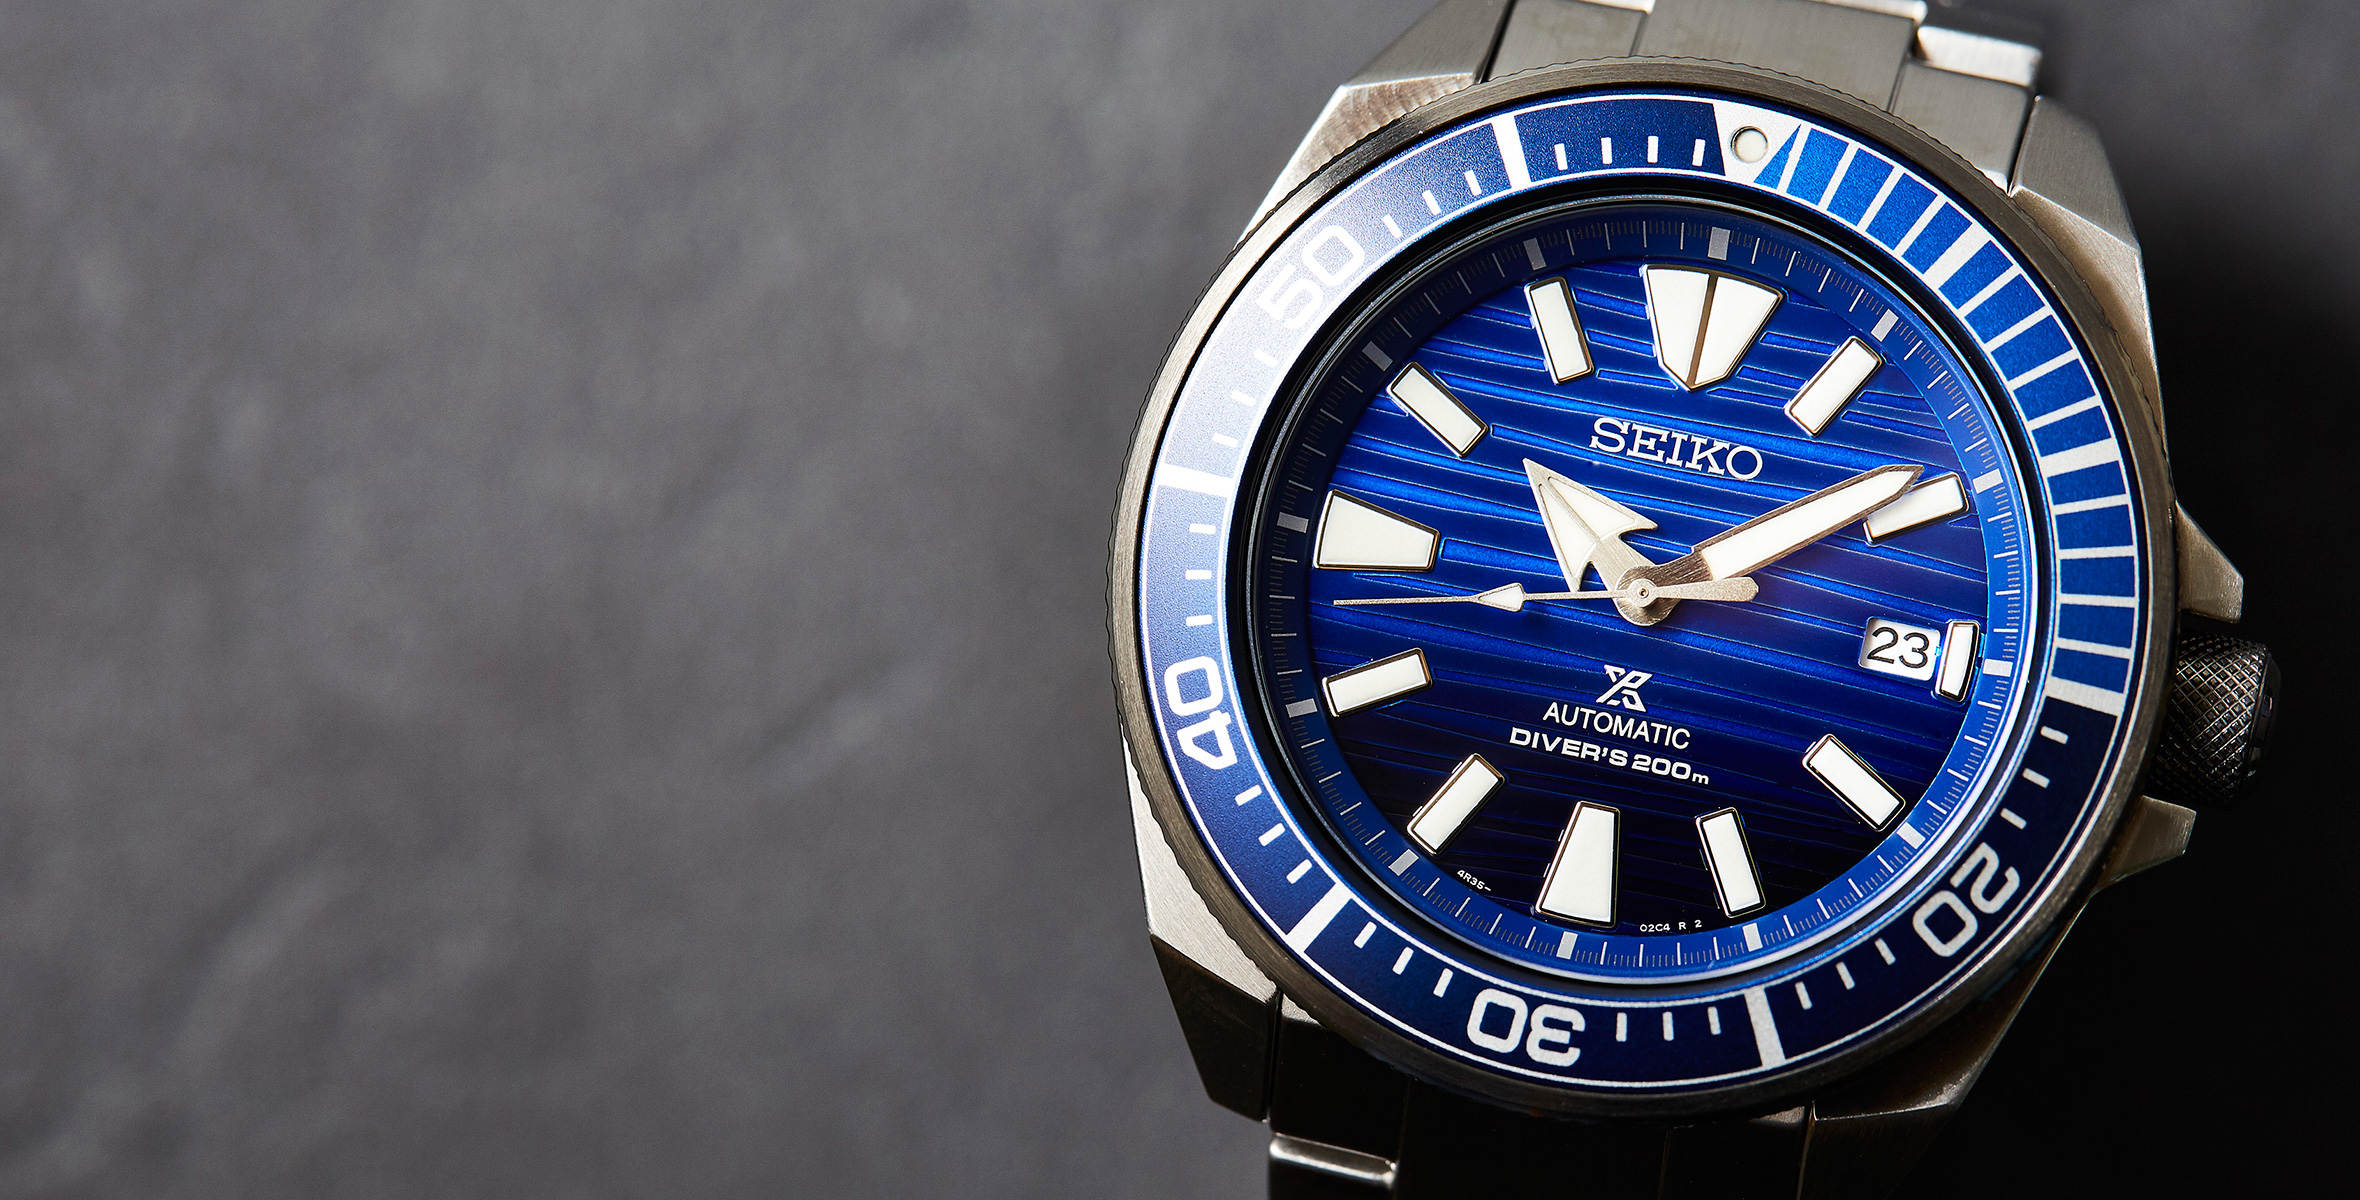 IN-DEPTH: The Seiko Samurai 'Save The Ocean' SRPC93K | Time and Tide